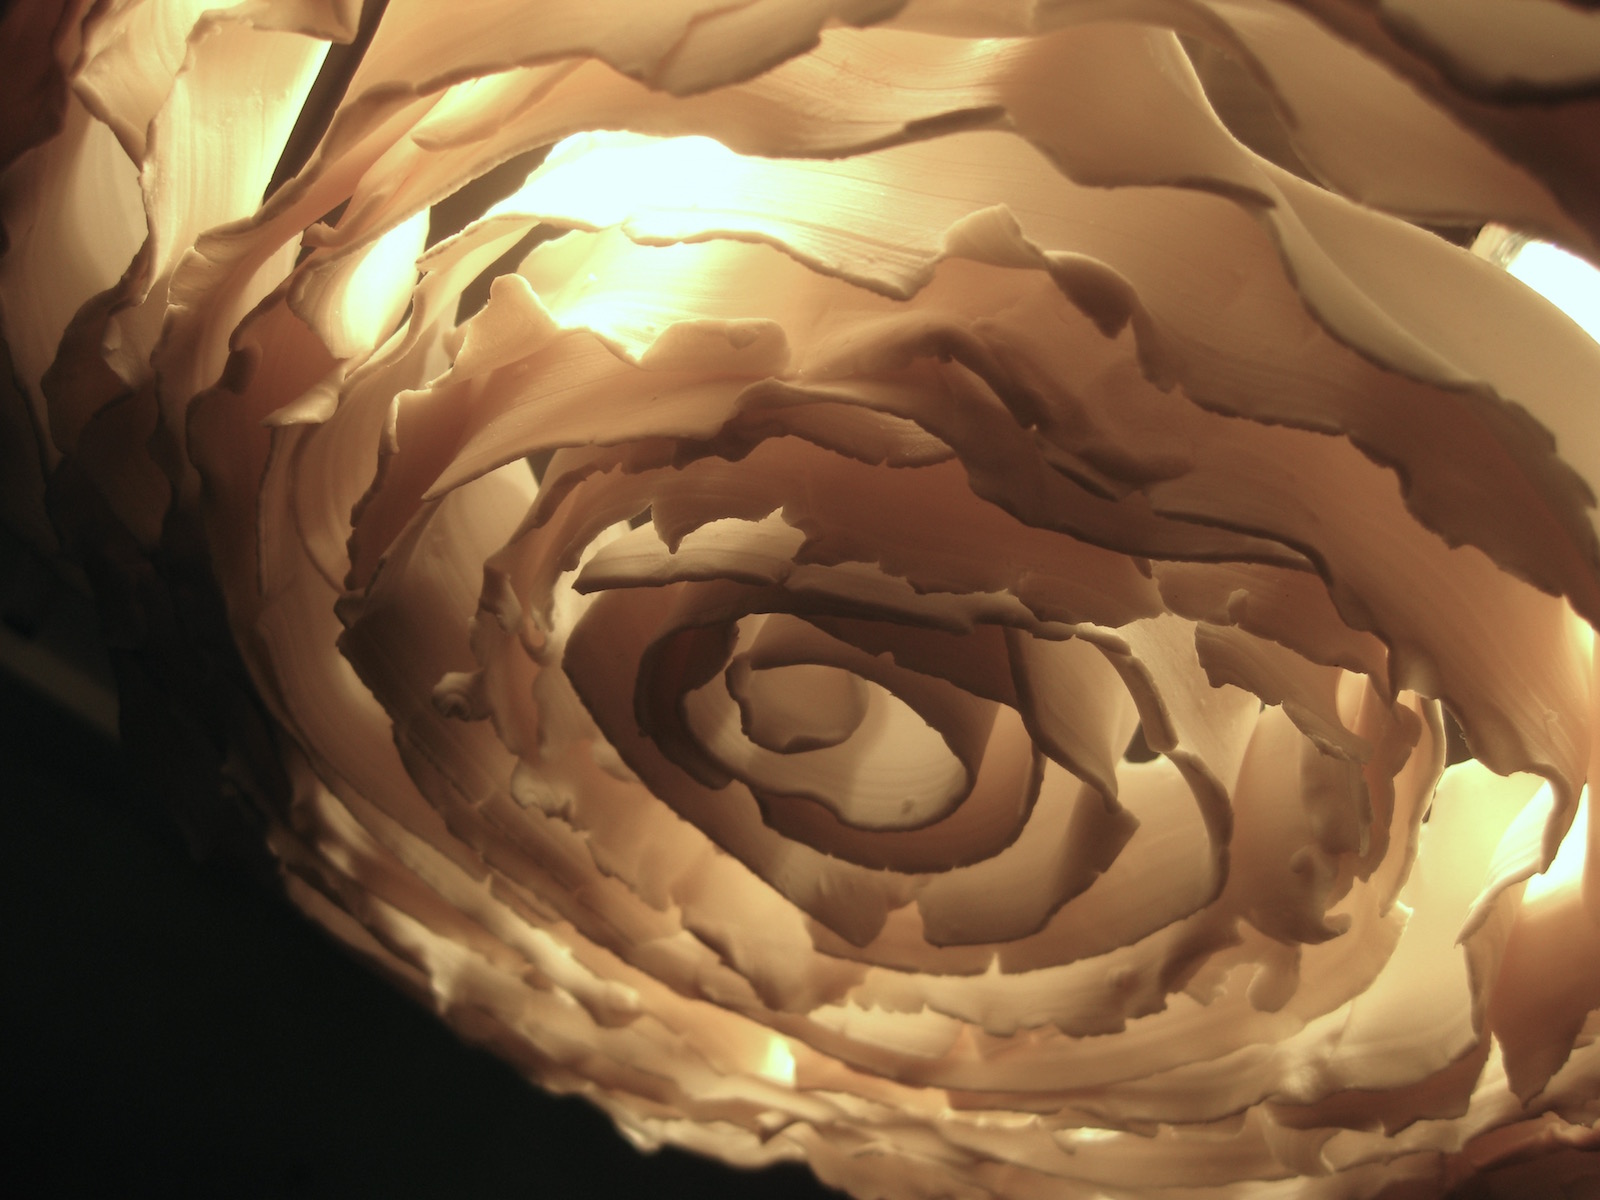 Detail of porcelain abstract rose plafond lamp